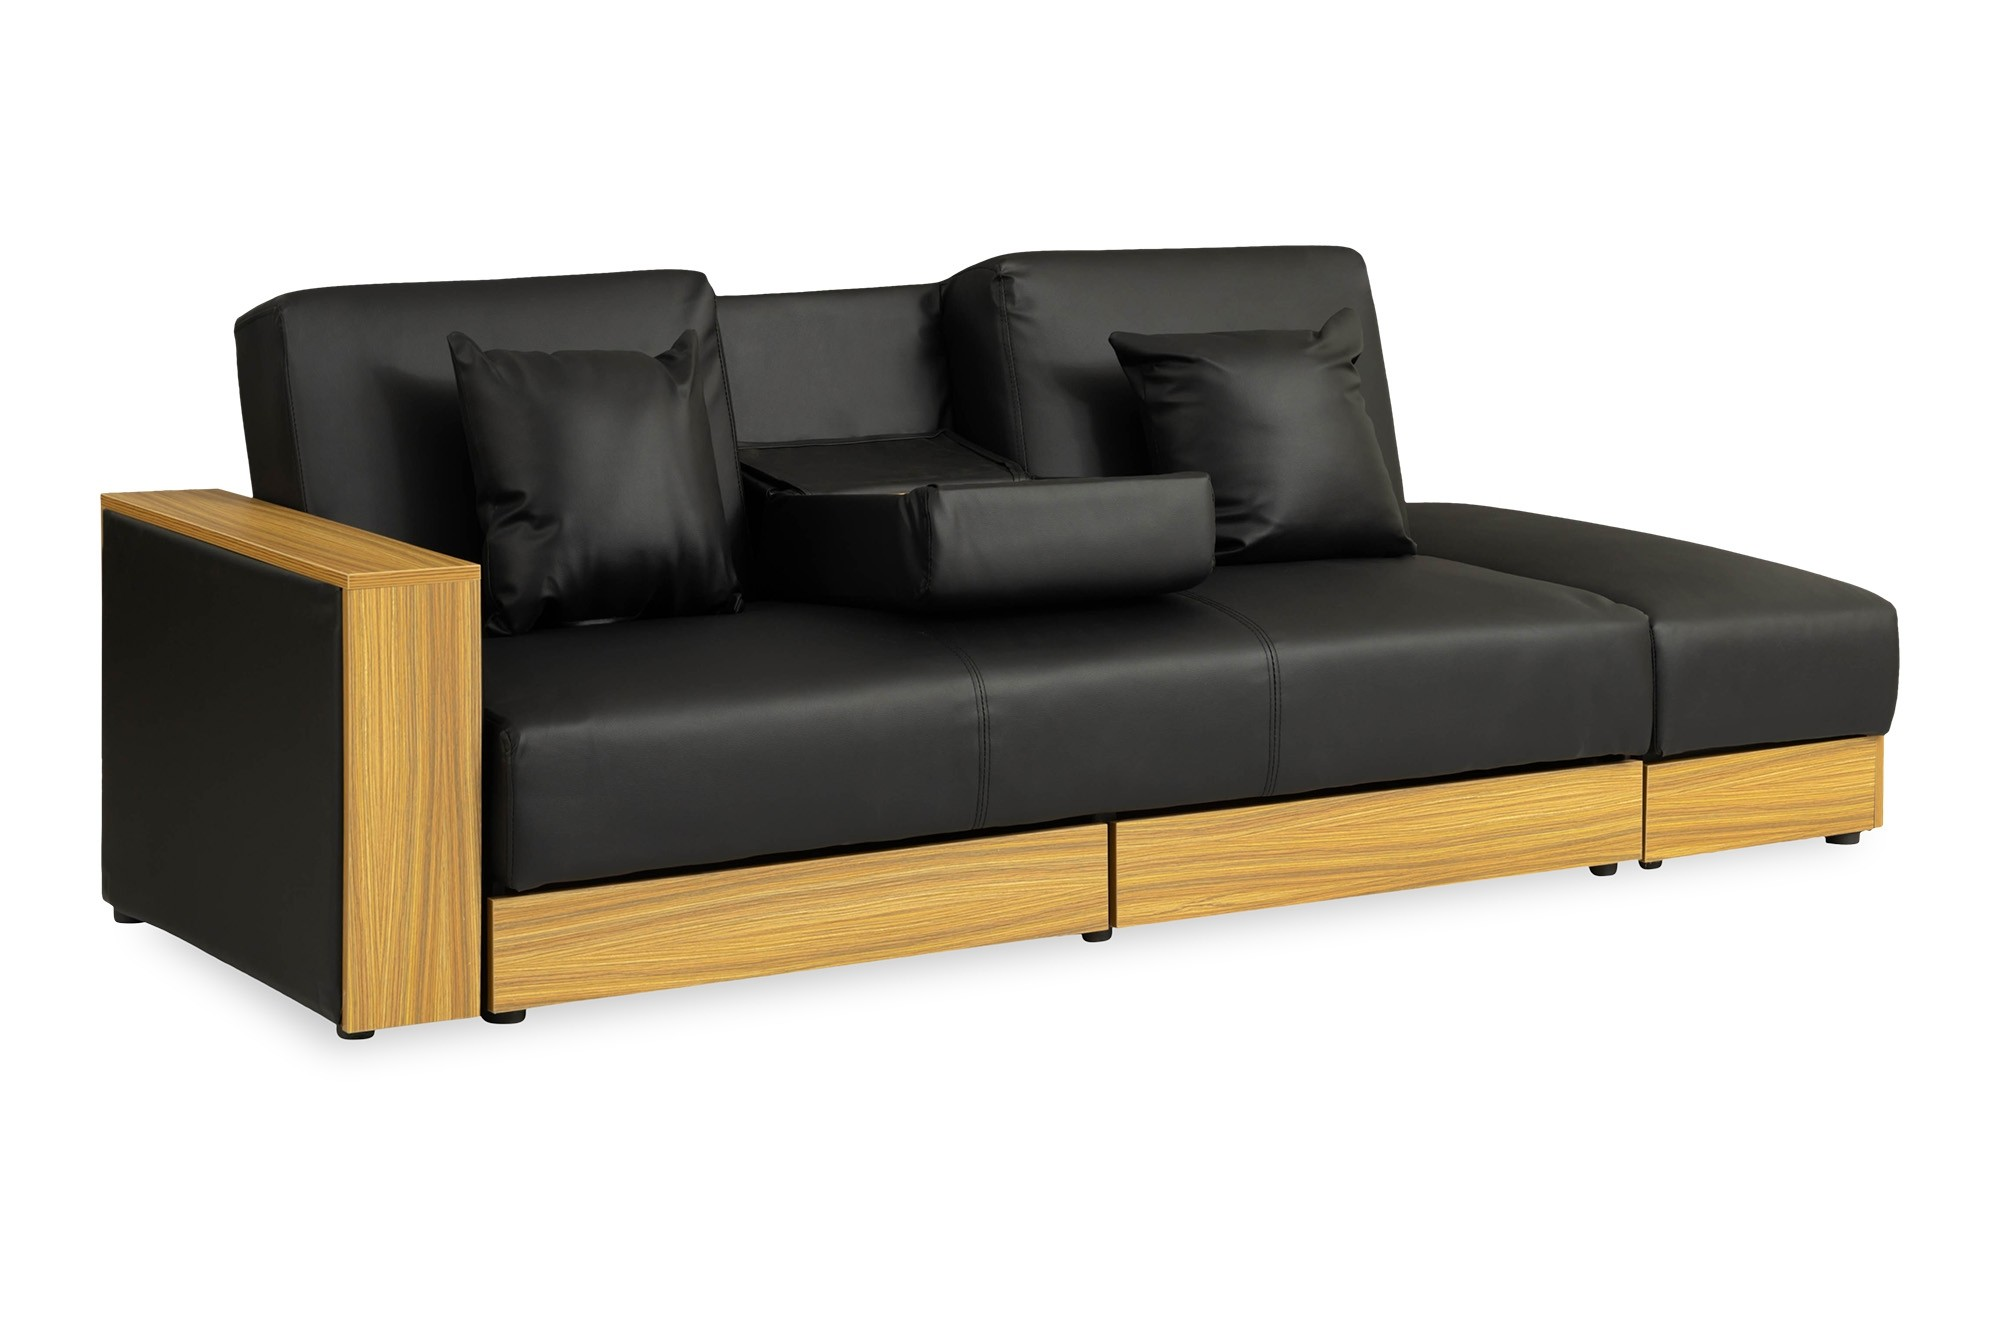 Sarai Storage Sofa Bed Pvc Black